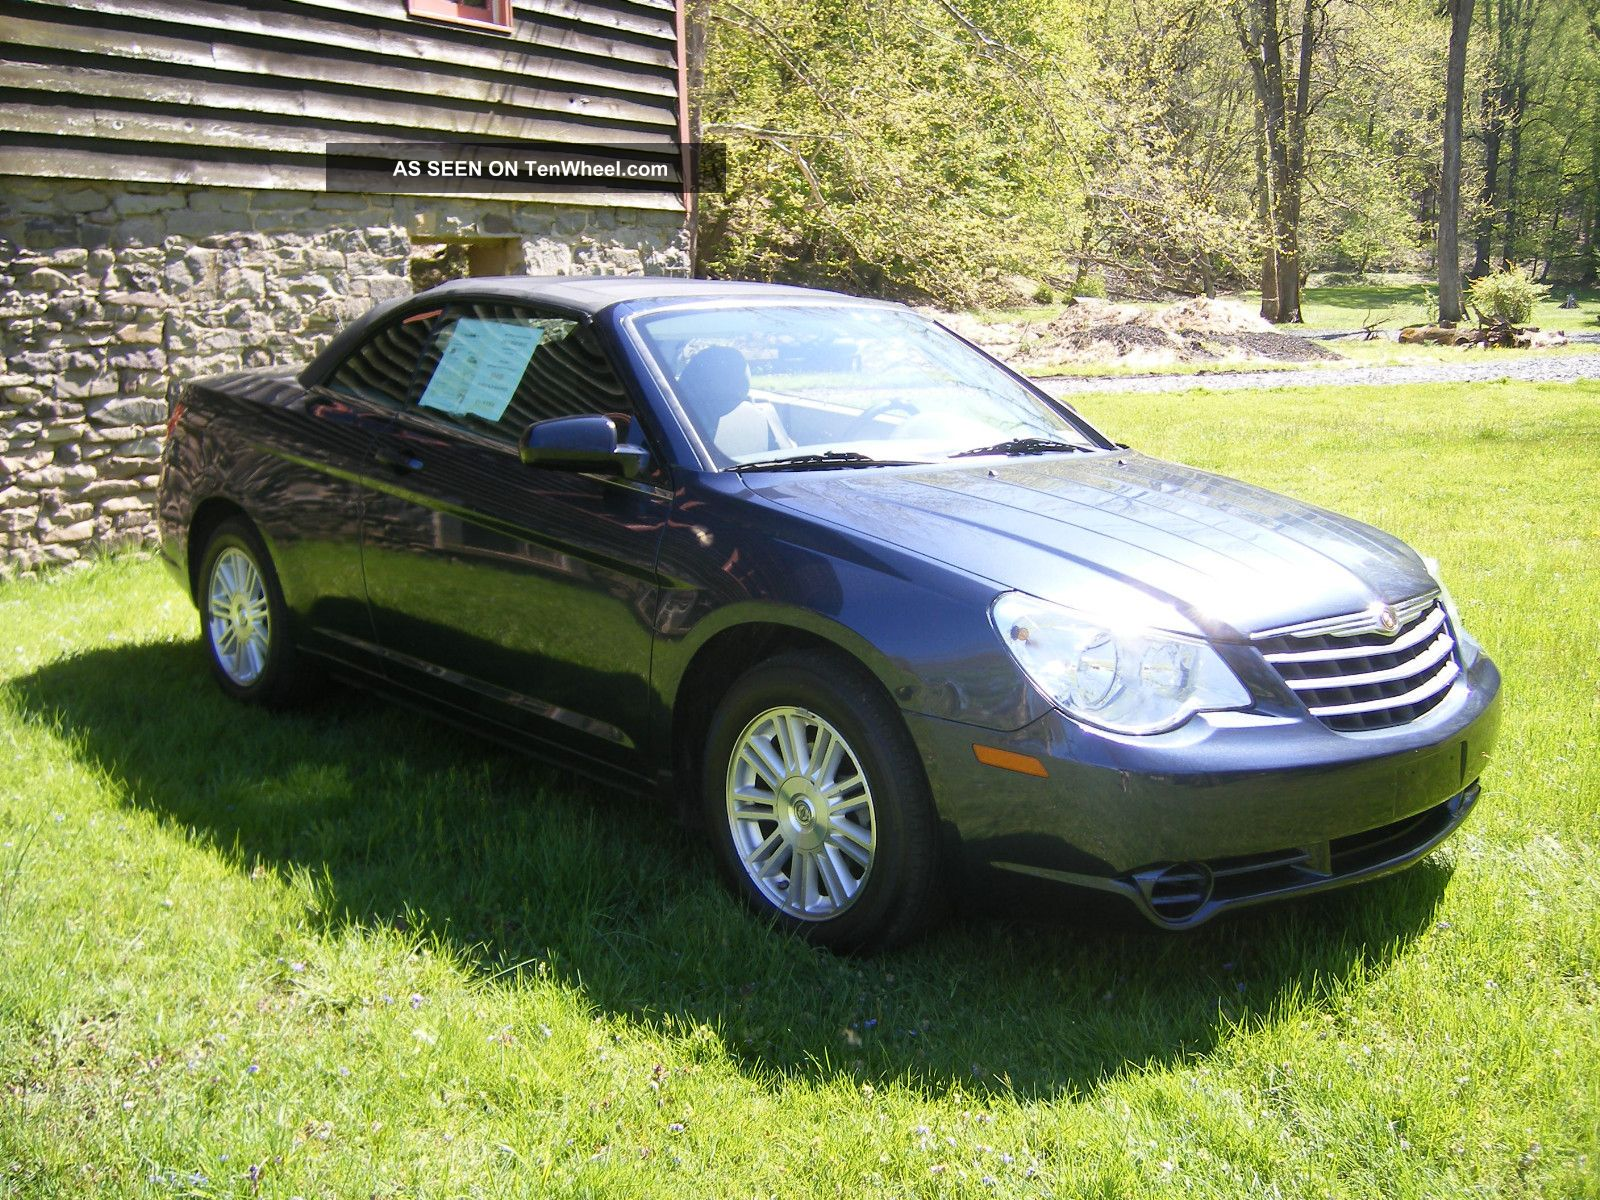 2008 chrysler sebring lx convertible 2 door 2 4l sebring photo 4. Cars Review. Best American Auto & Cars Review